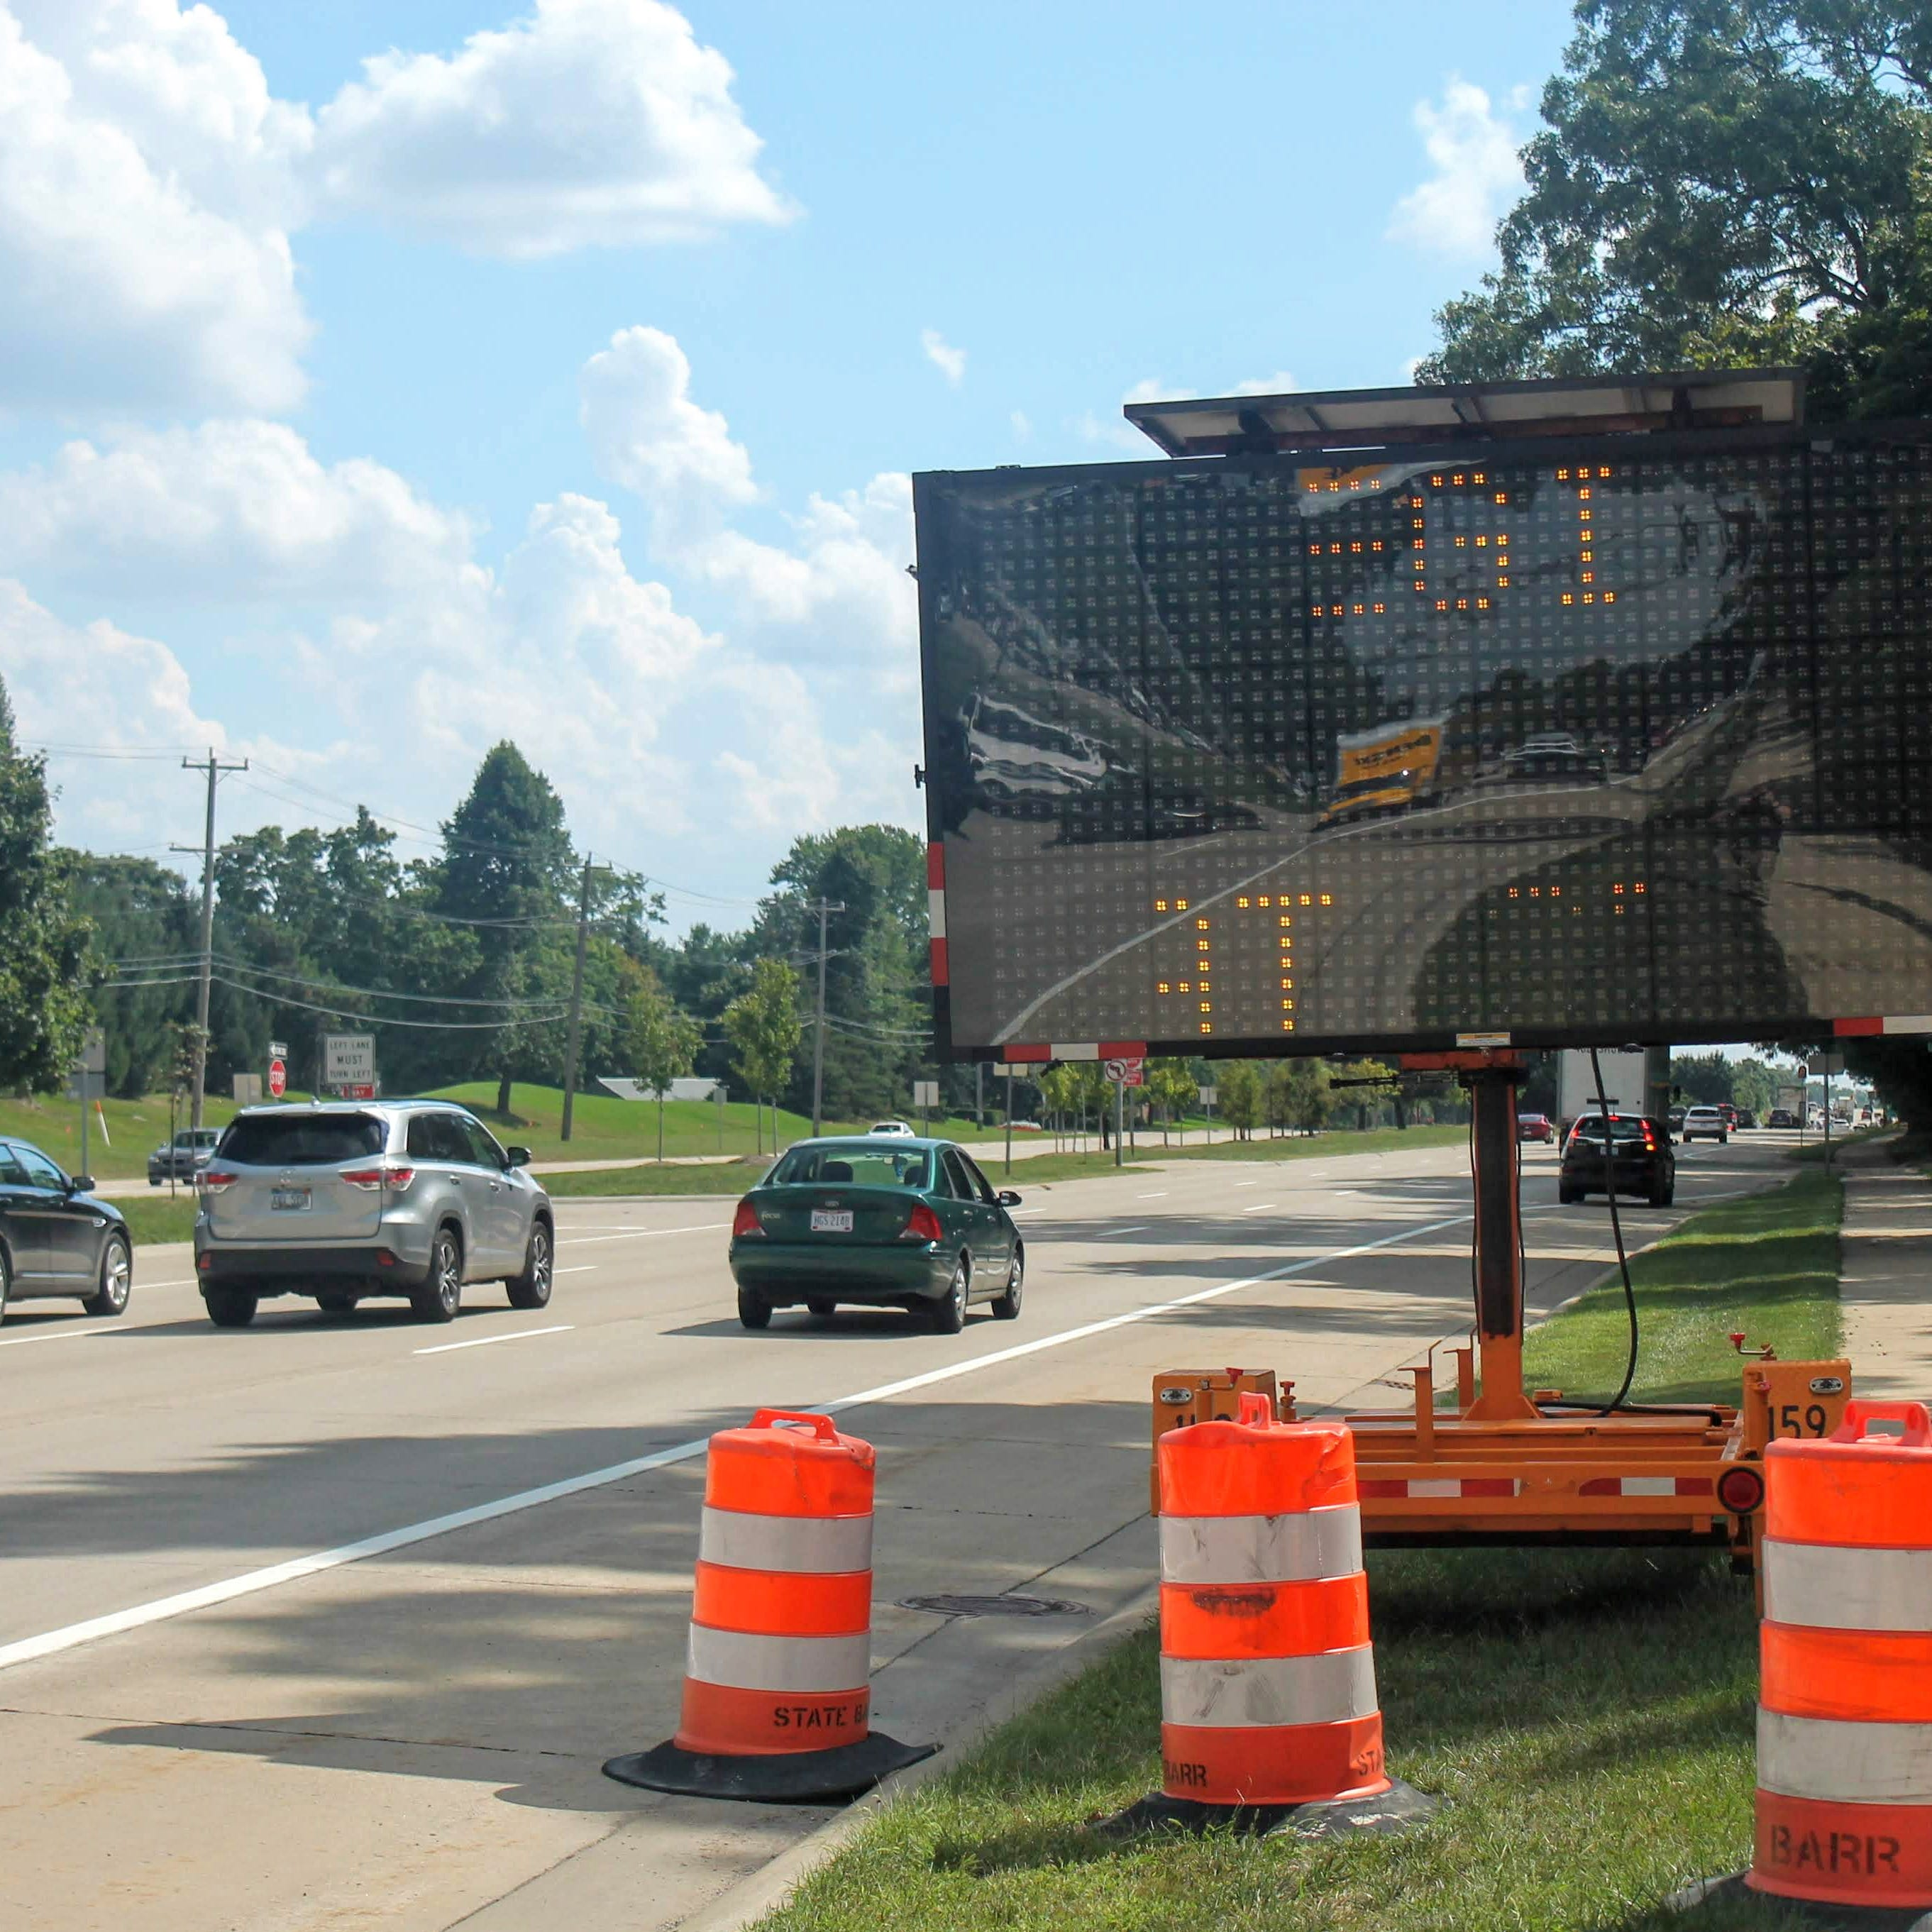 Some work on Telegraph Road in Bloomfield Township beginning today